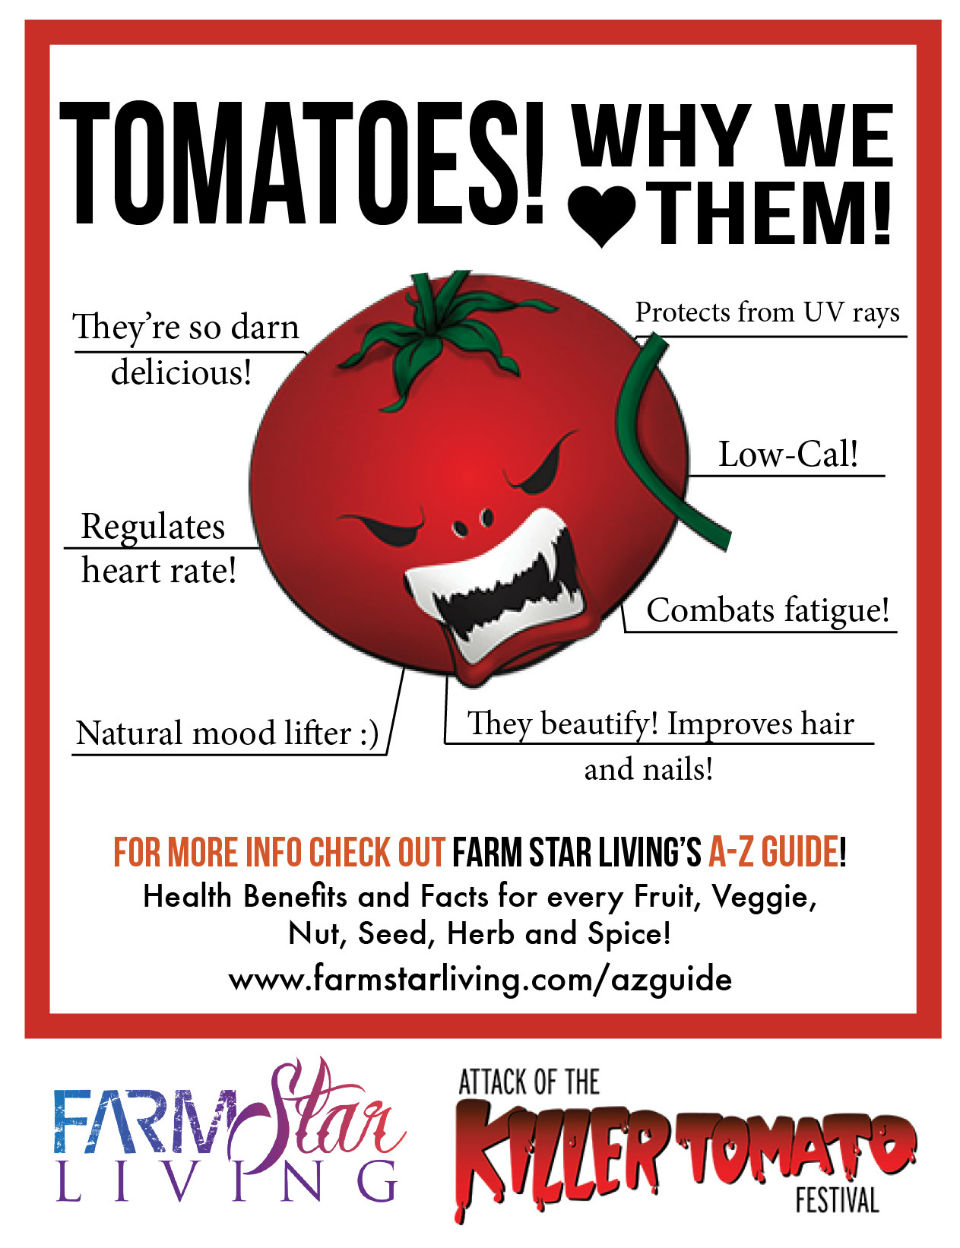 It's the Attack of the Killer Tomatoes!